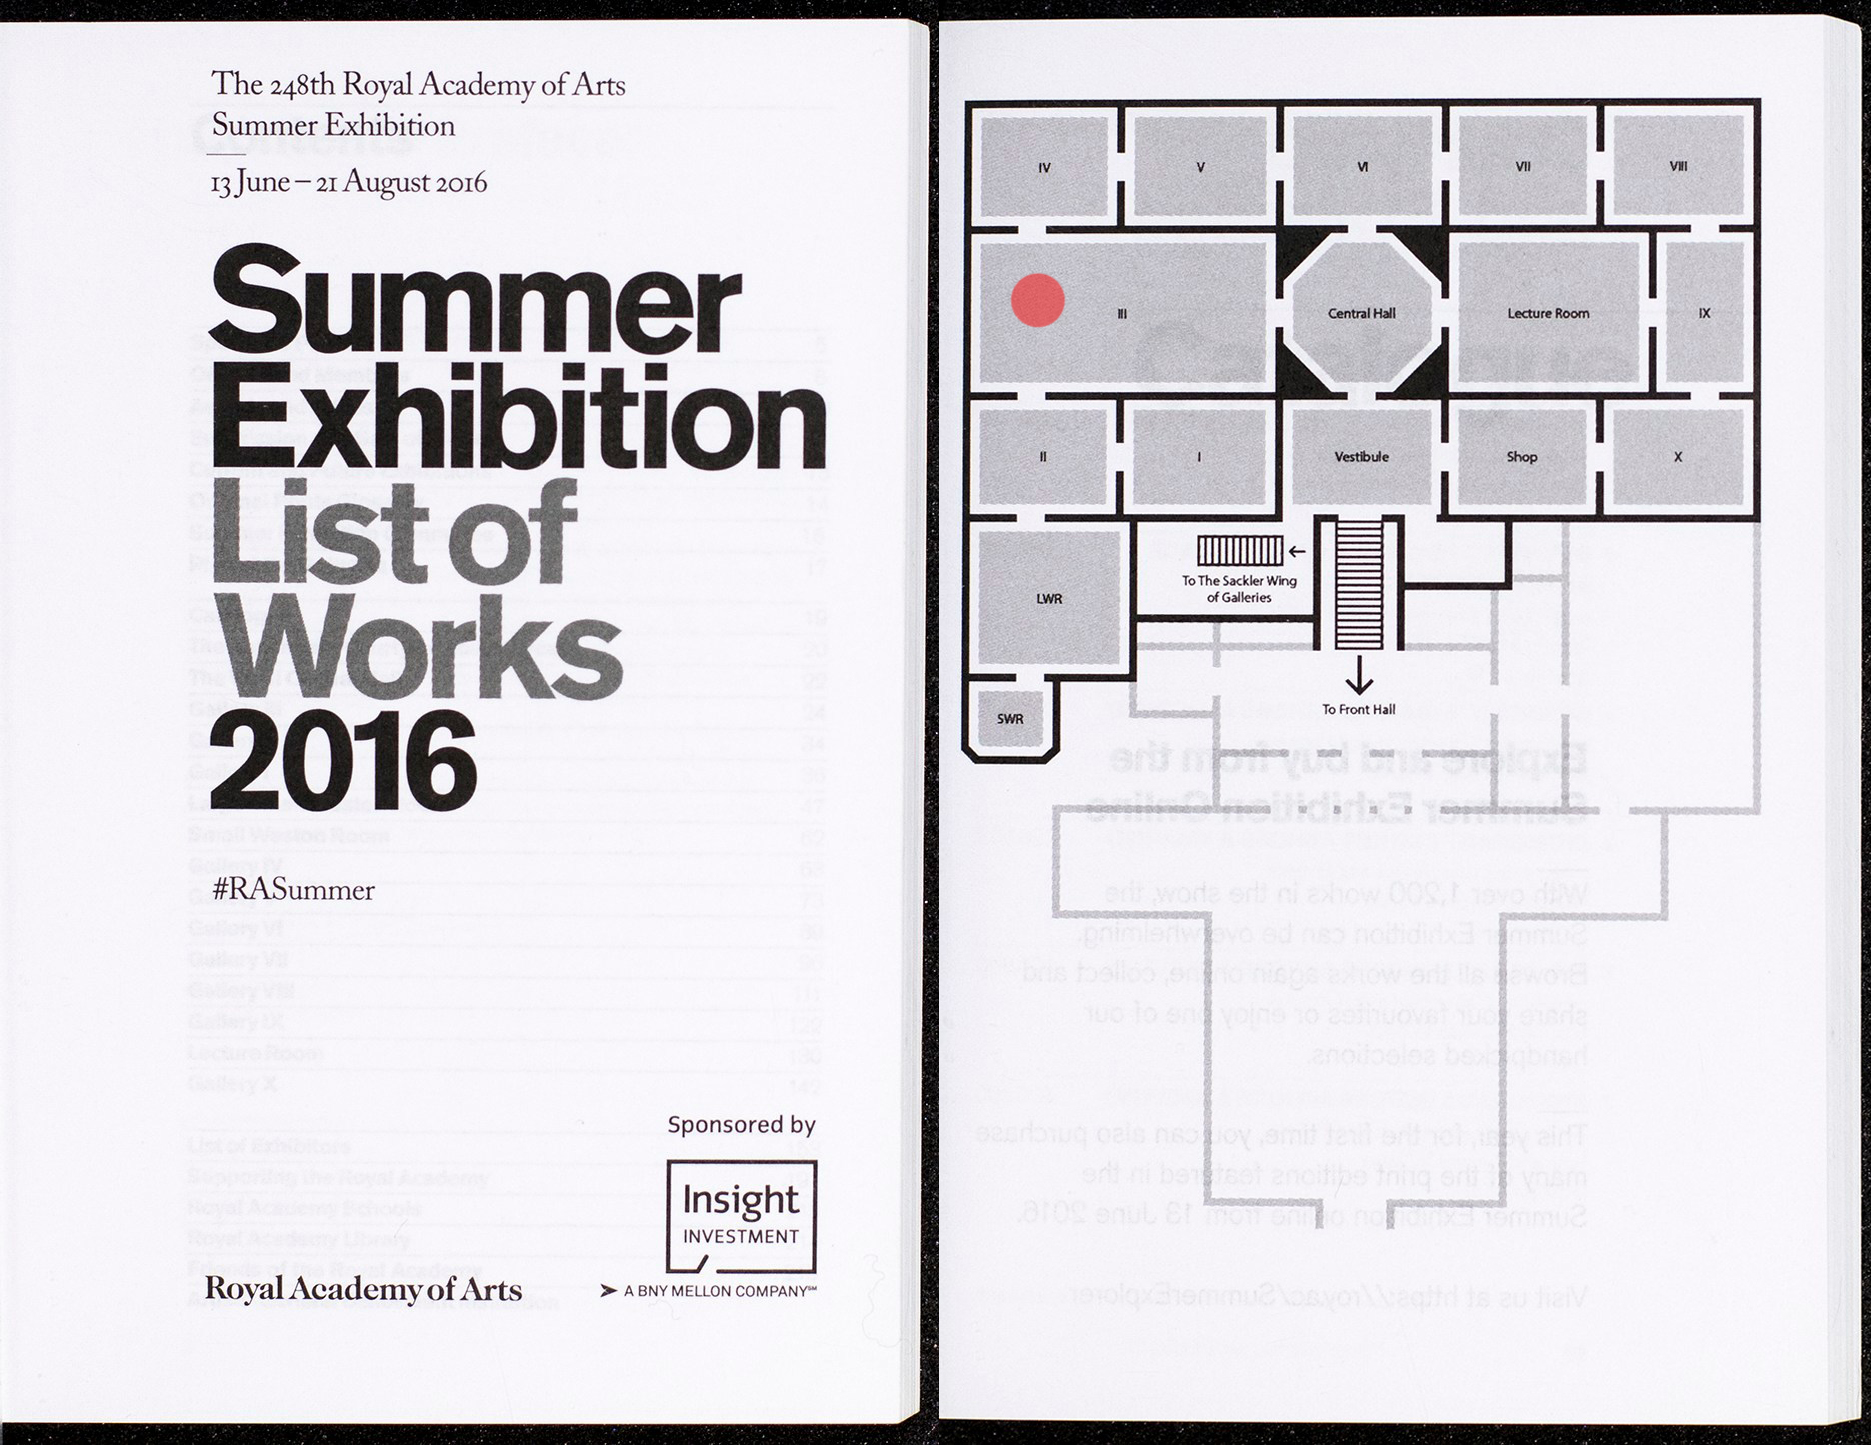 04_MEDIOMUNDO_ROYAL ACADEMY SUMMER EXHIBITION